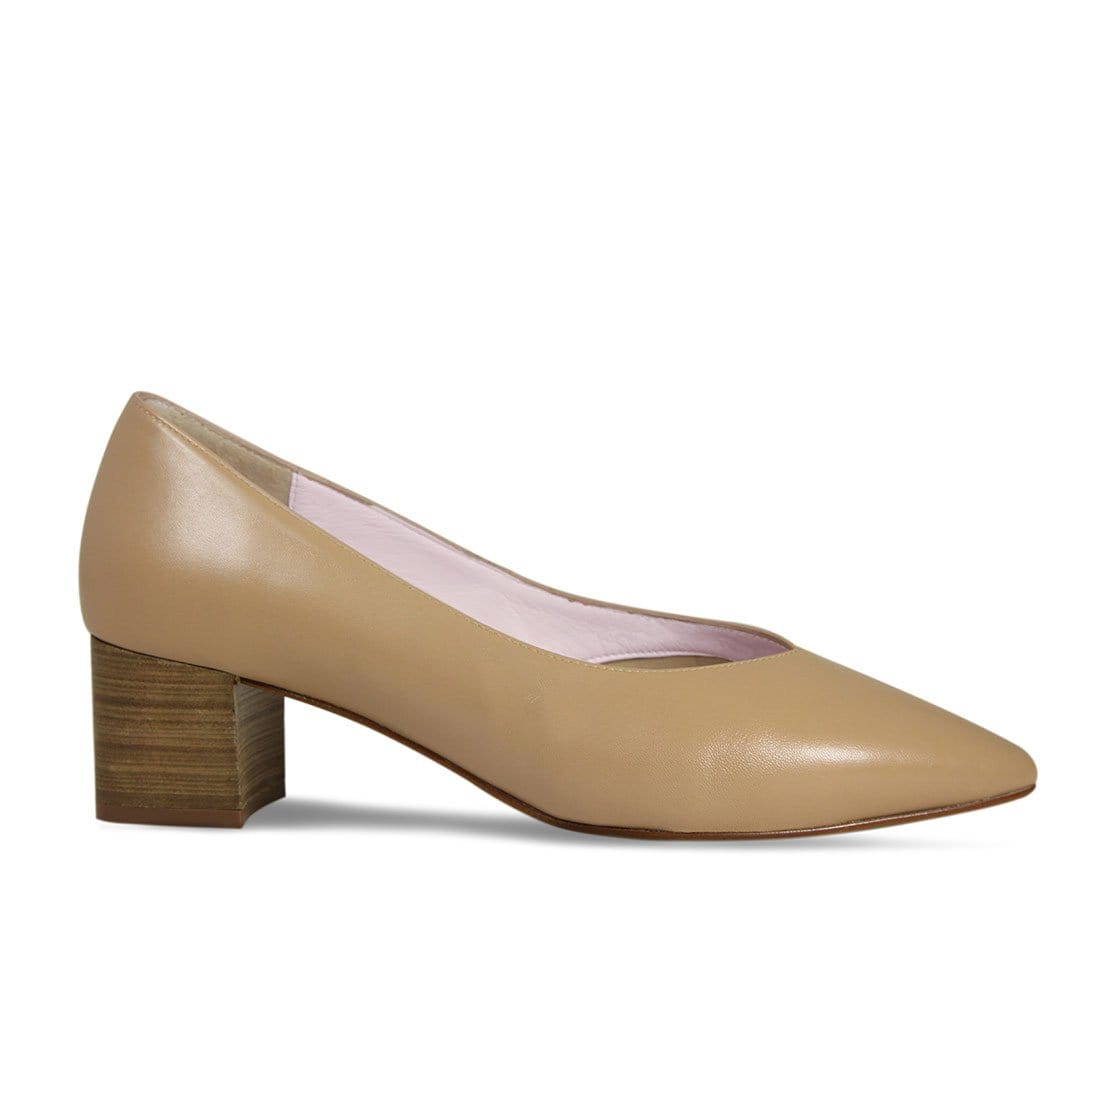 Camel Leather Block Heeled Pumps